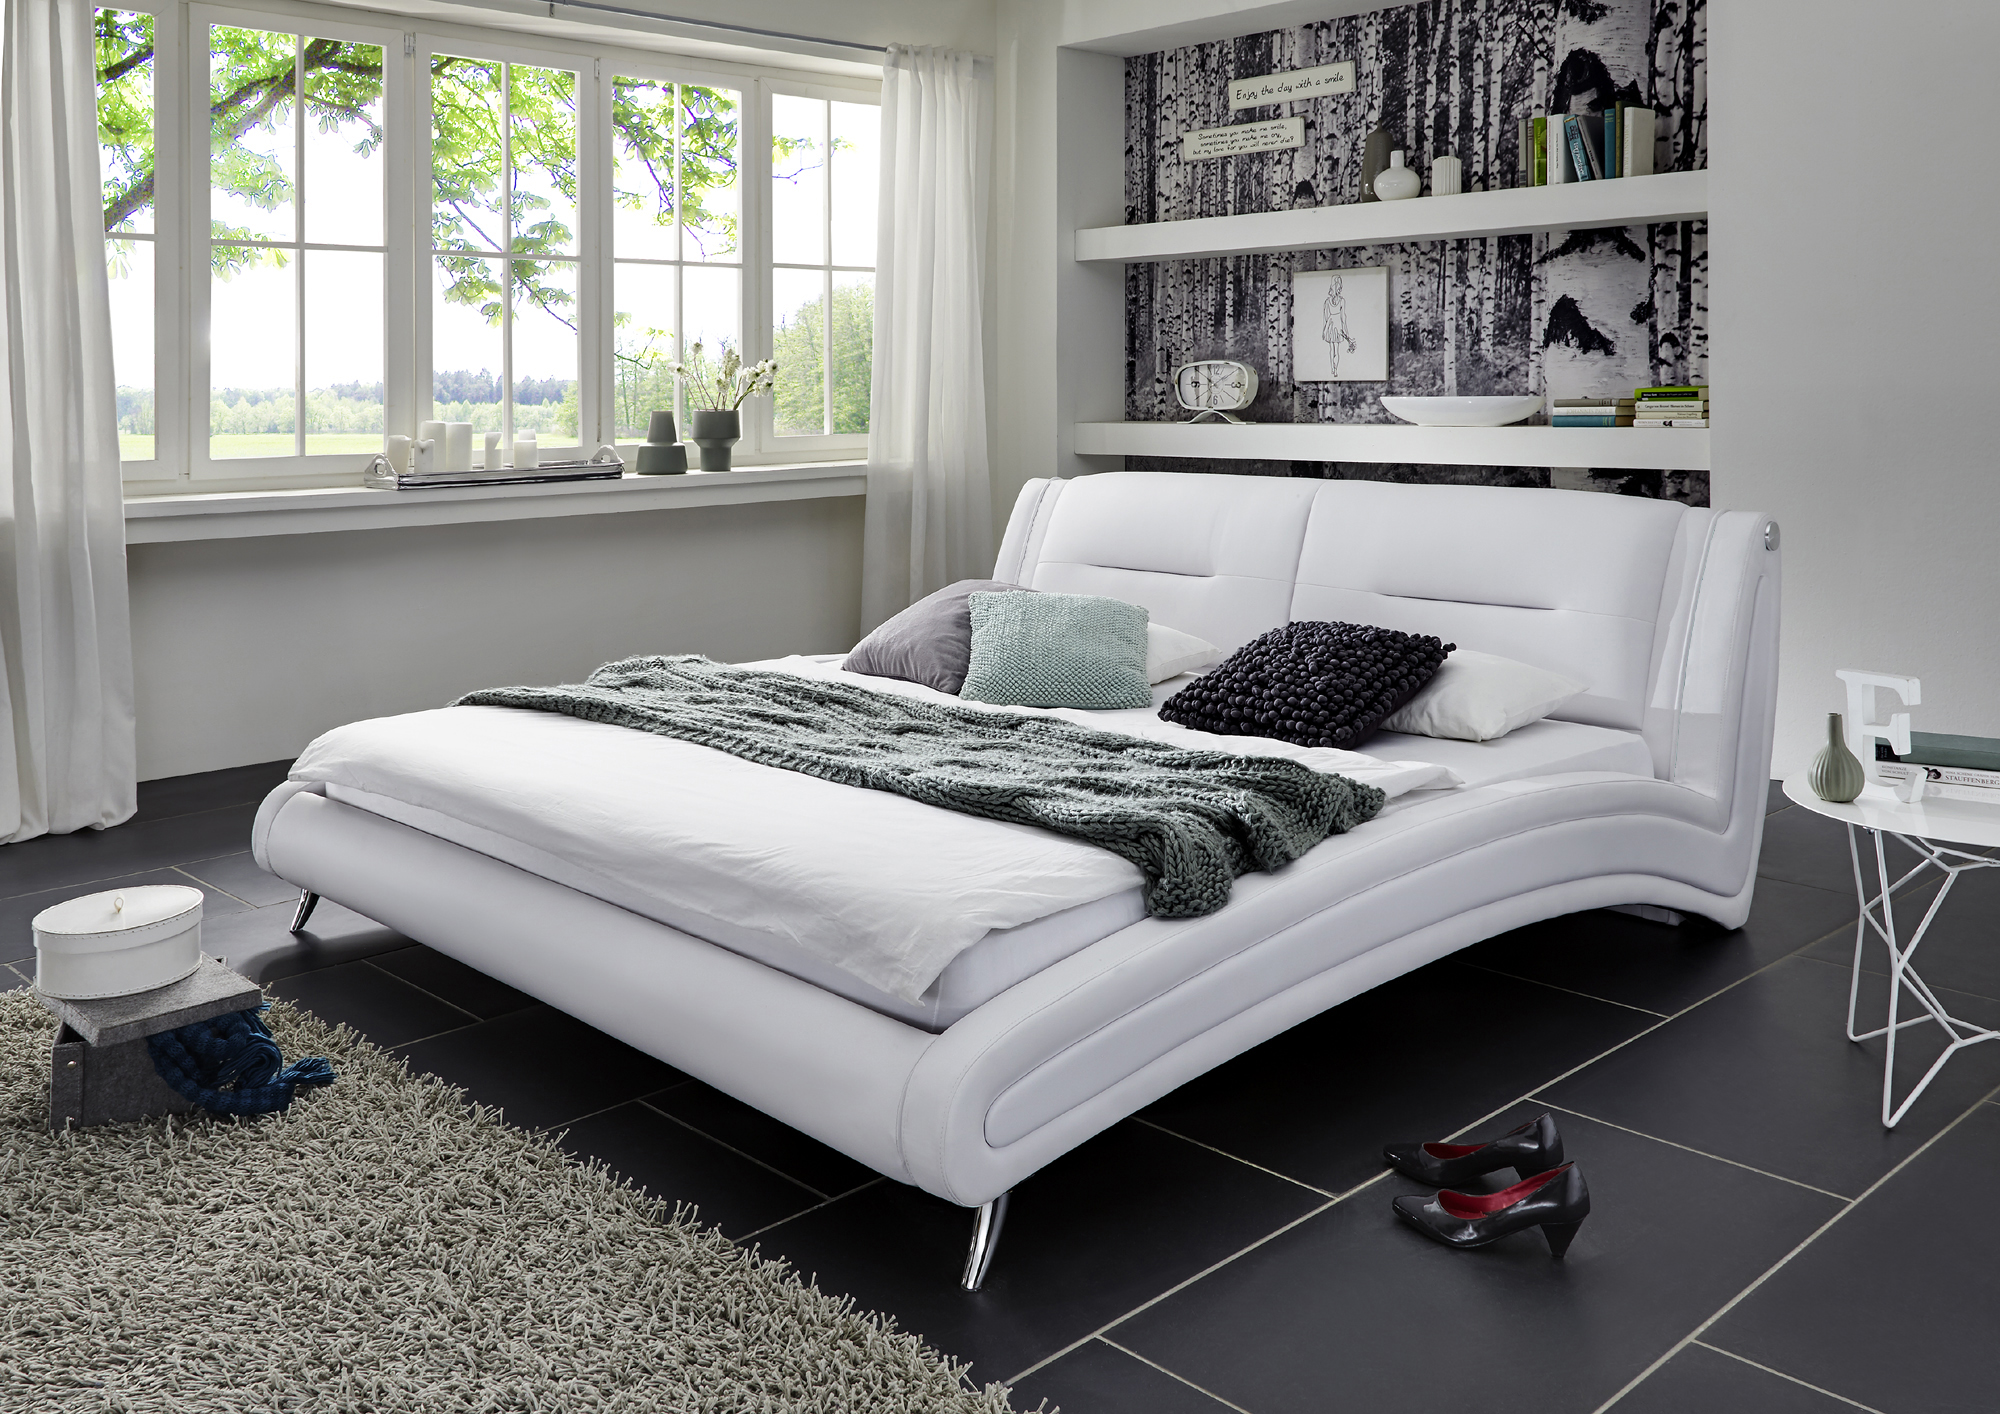 sam design bett 120 x 200 cm wei swing auf lager. Black Bedroom Furniture Sets. Home Design Ideas